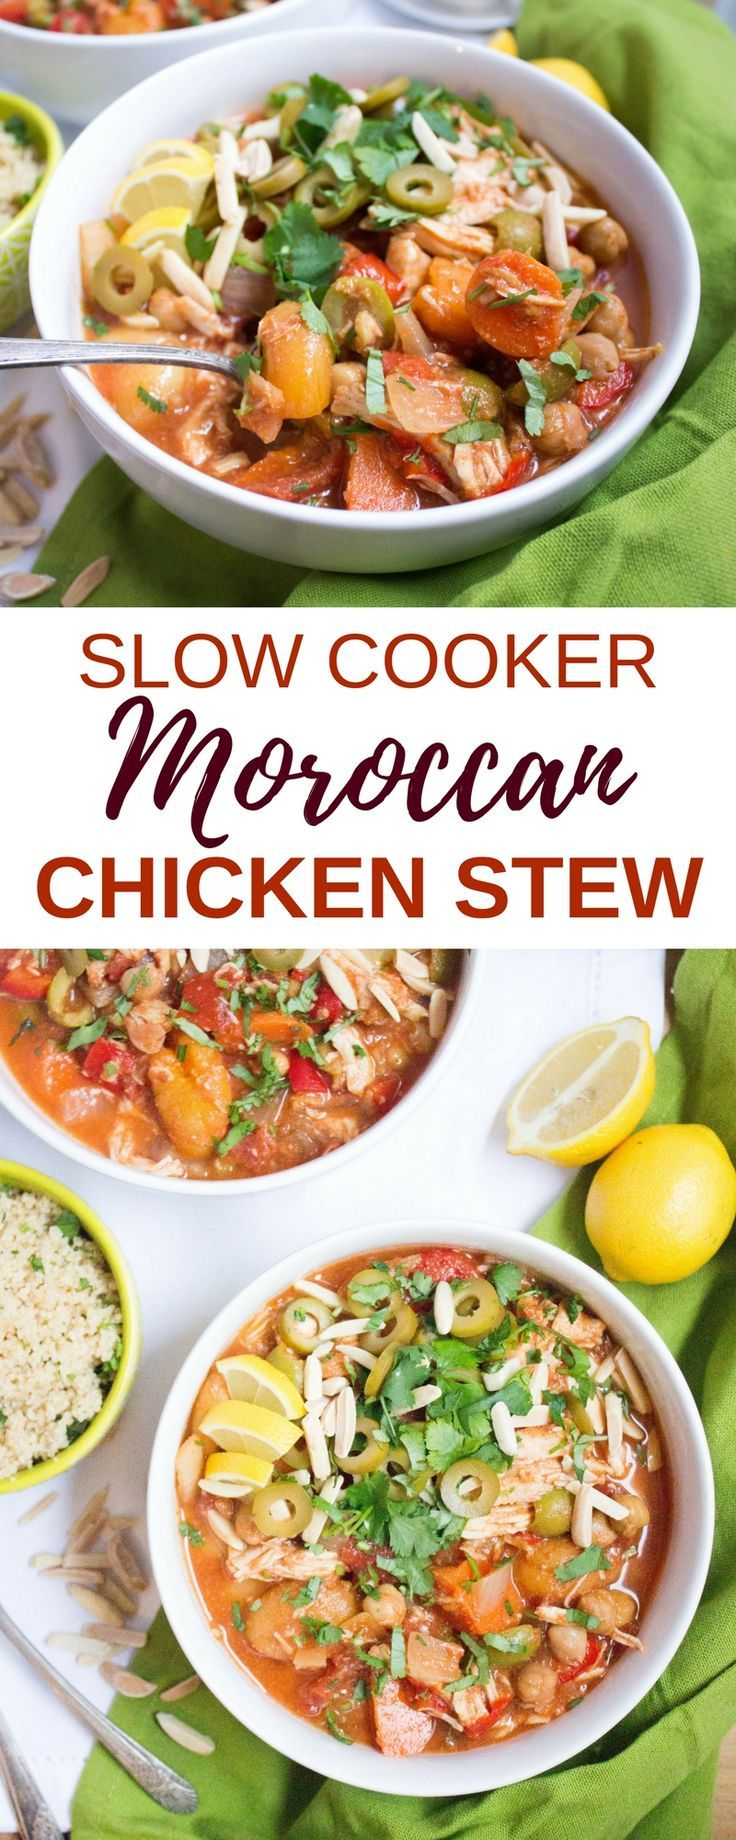 This Slow Cooker Moroccan Chicken Stew is packed with warm spices, briny olives, sweet apricots, and tender, flavorful chicken and veggies! It's perfect for an easy weeknight meal - just set it in the slow cooker and come home to a cozy, hearty, and satis